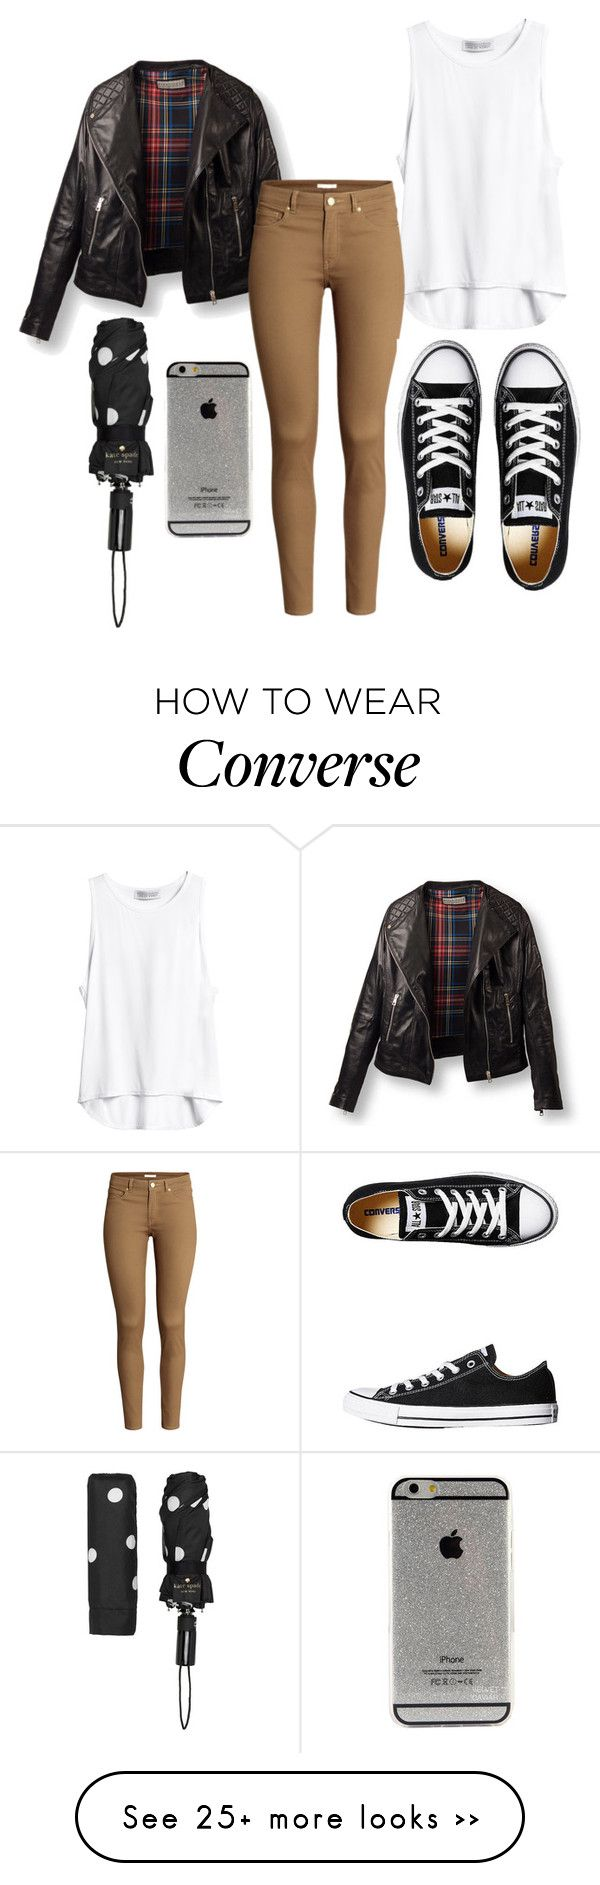 Wear to what rainy day polyvore exclusive photo